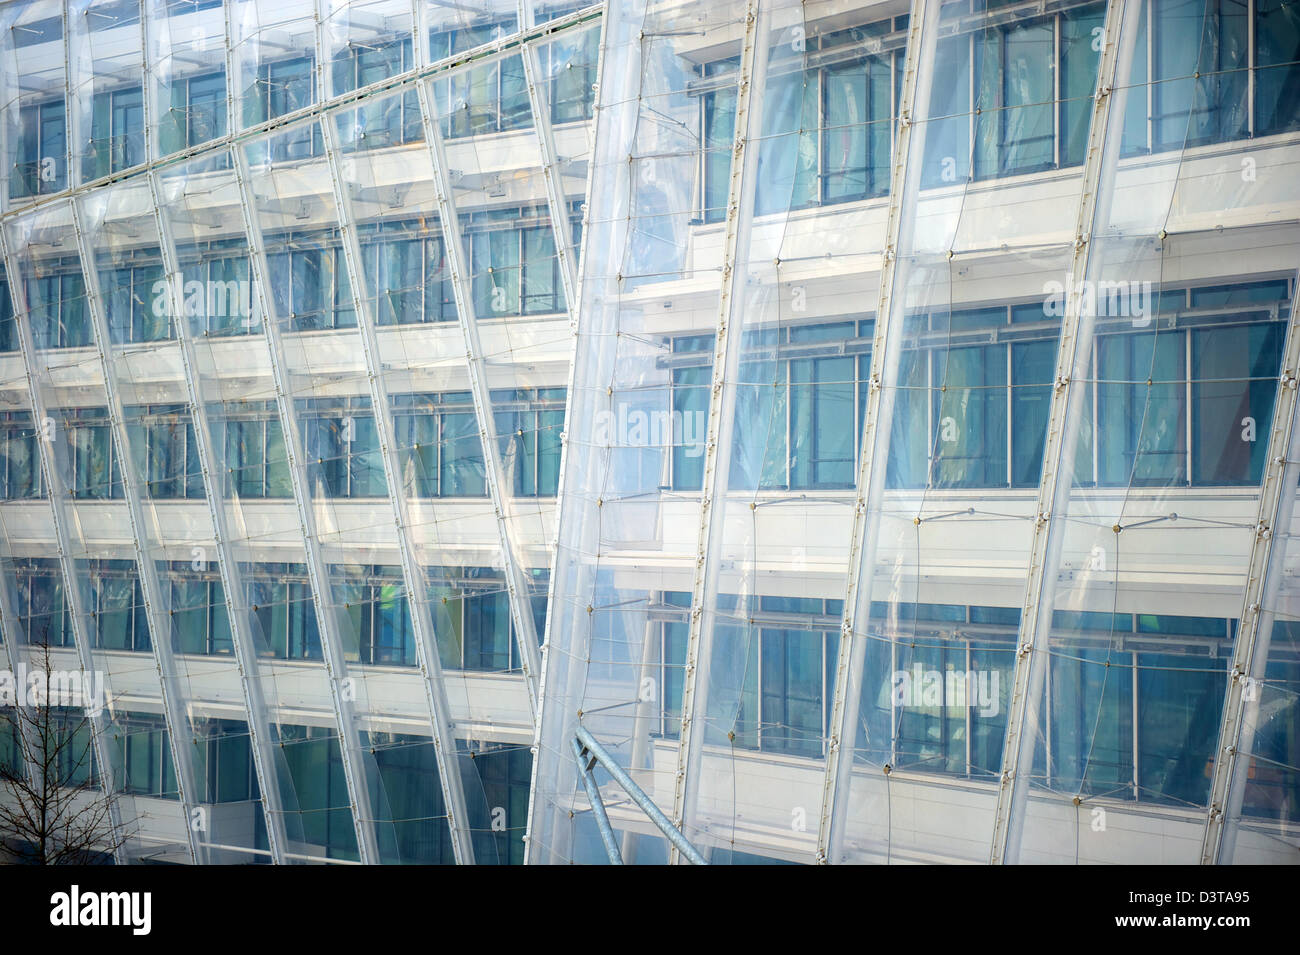 Hamburg, Germany, detail of the facade of the new Unilever building in HafenCity - Stock Image